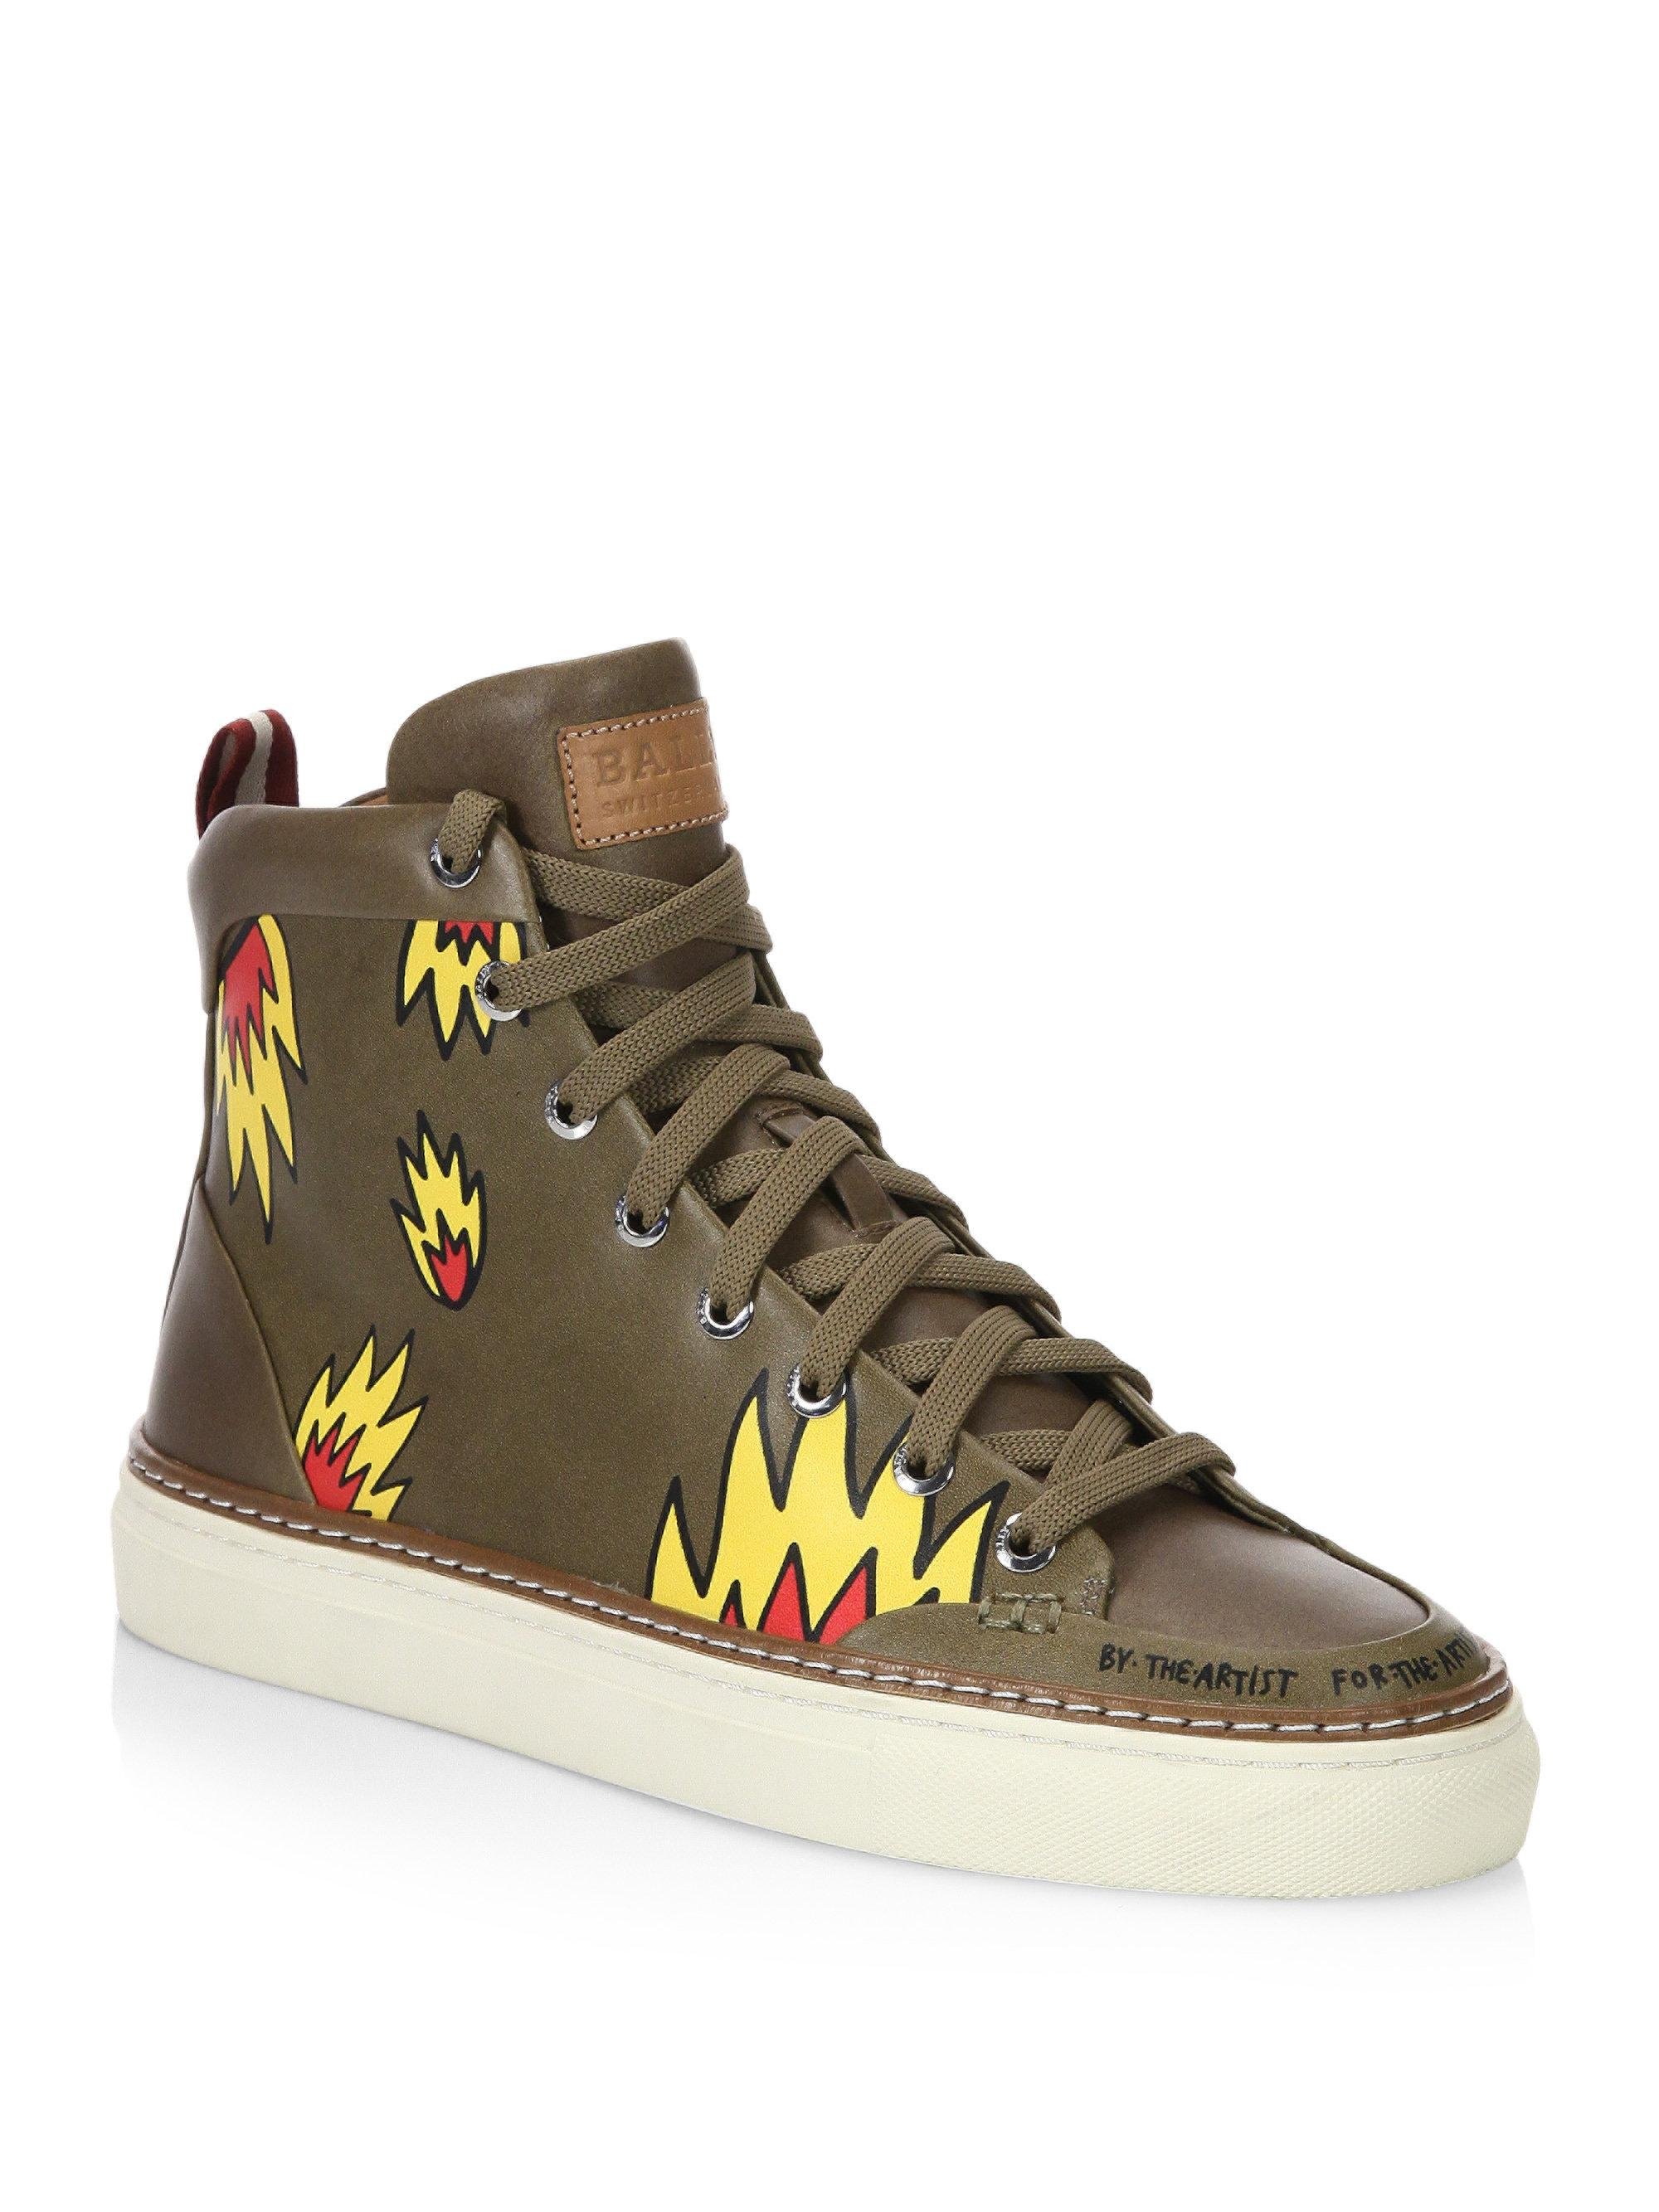 where can i order with credit card cheap price Bally printed sneakers view sale newest VEJpv